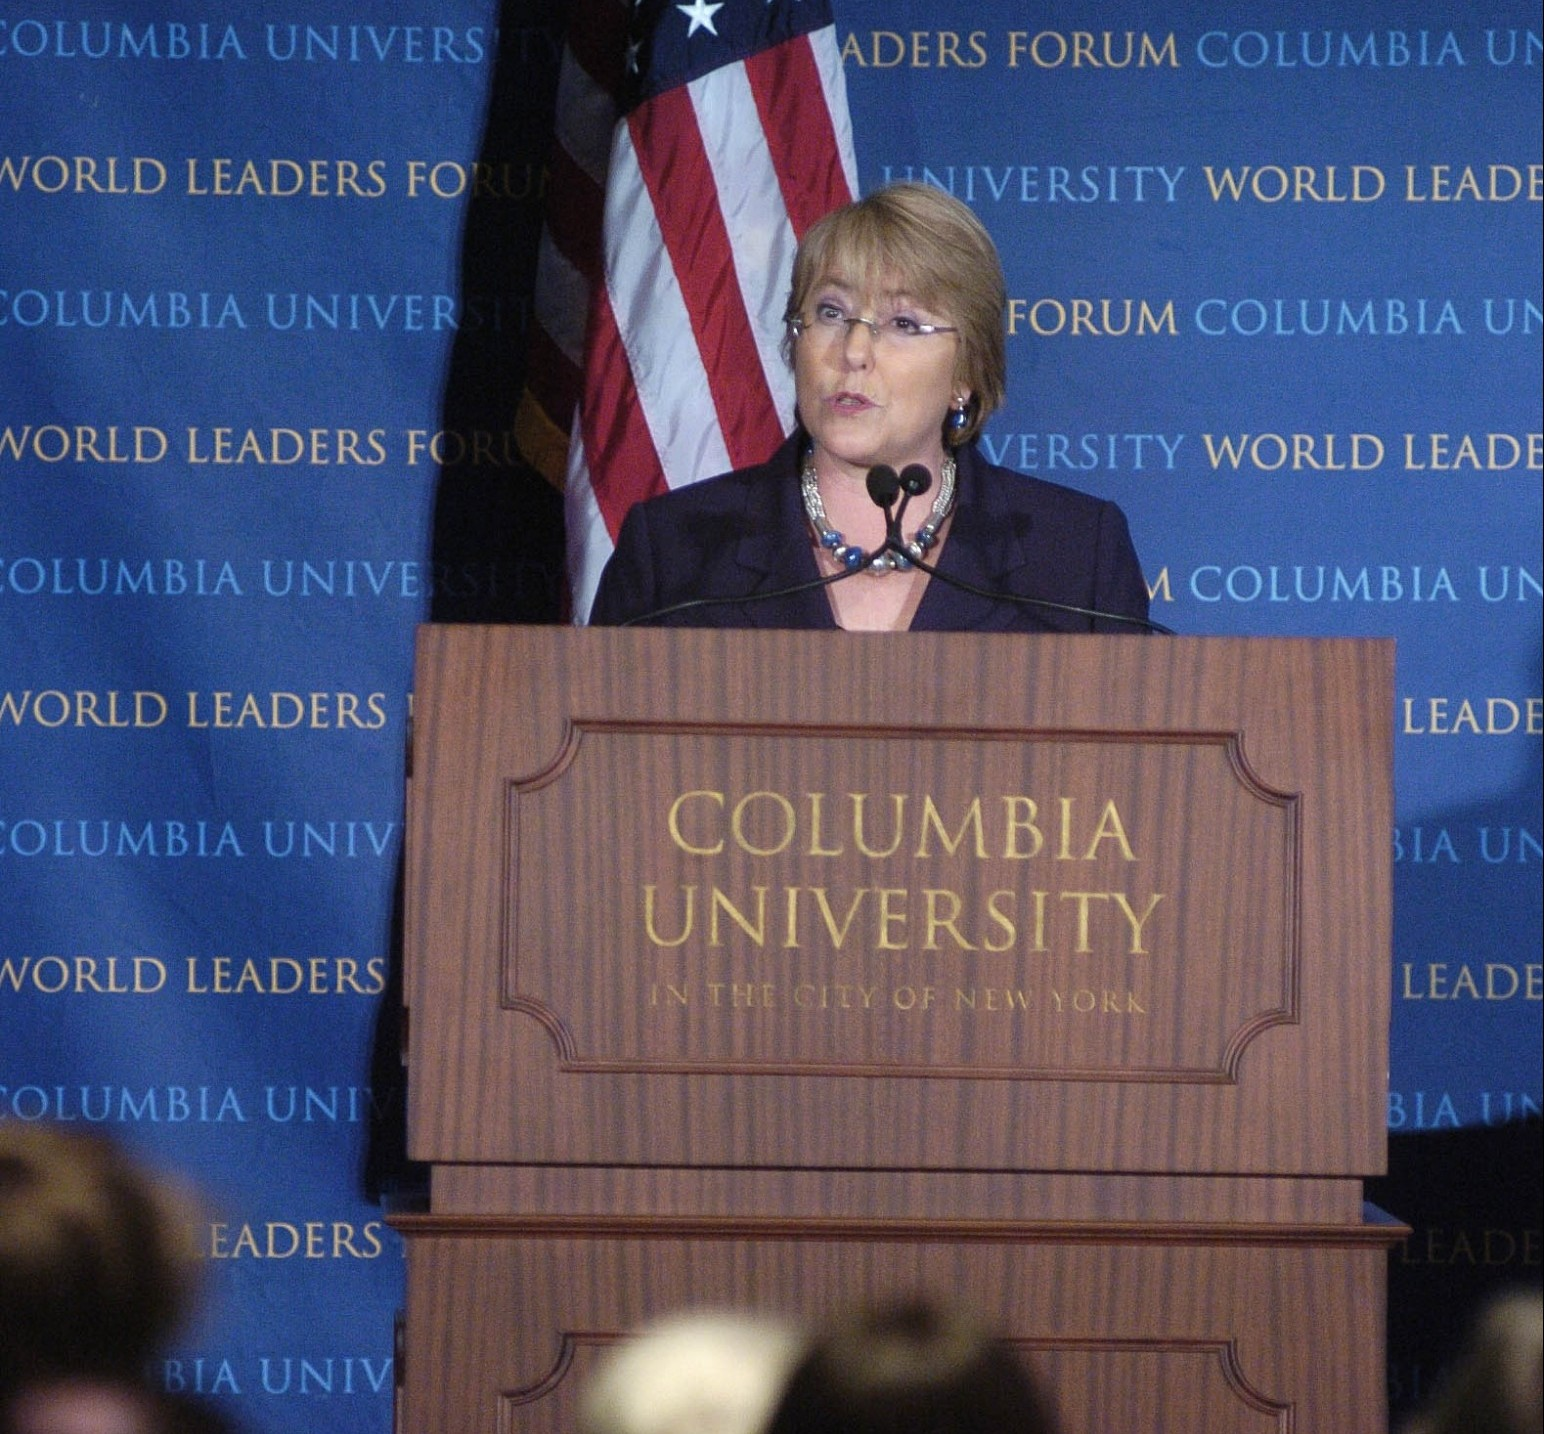 President Michelle Bachelet of the Republic of Chile